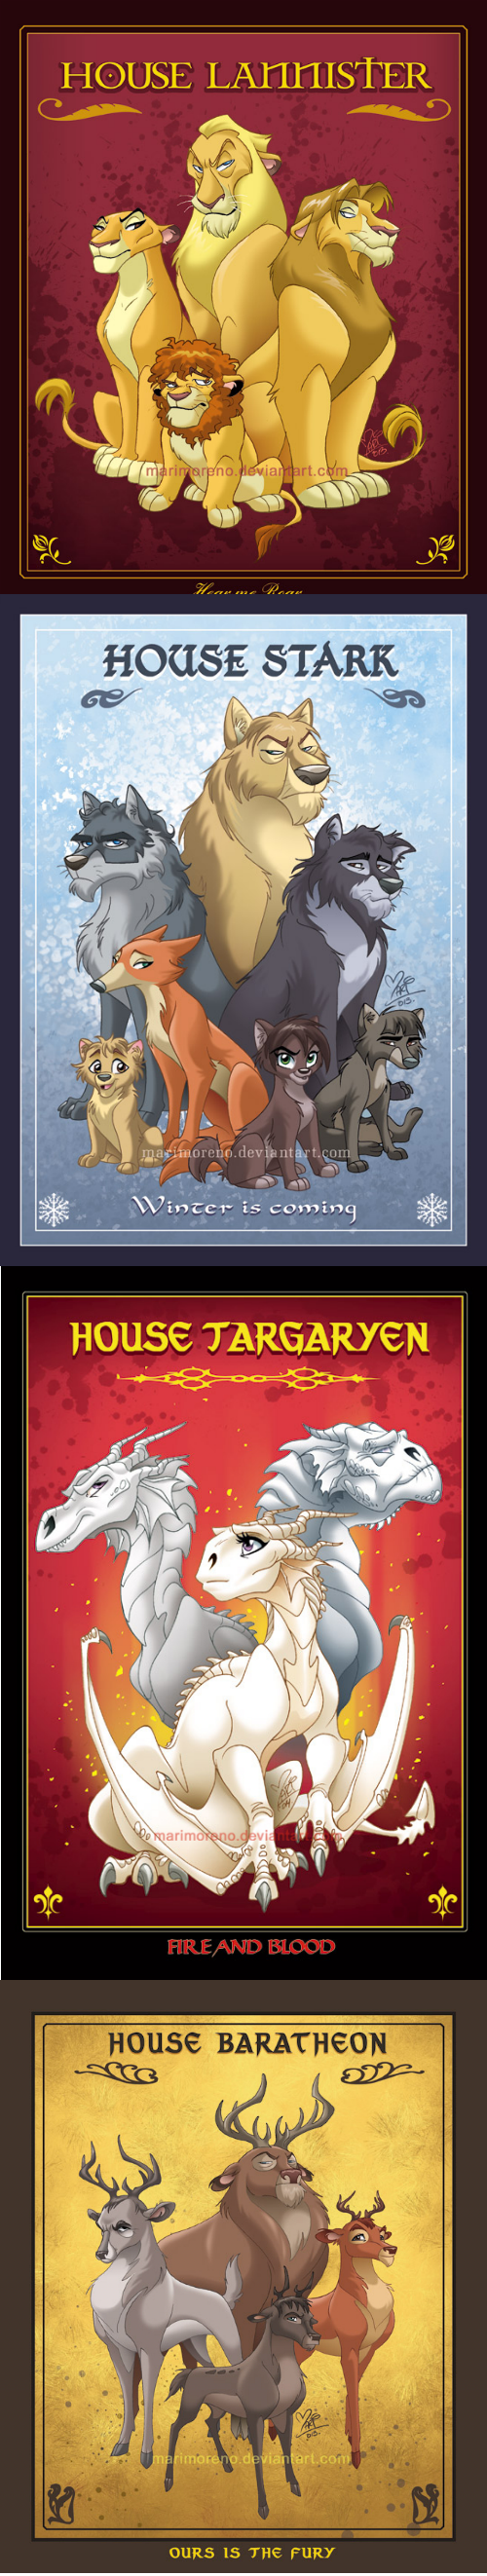 disney Fan Art Game of Thrones lion king - 8196219648